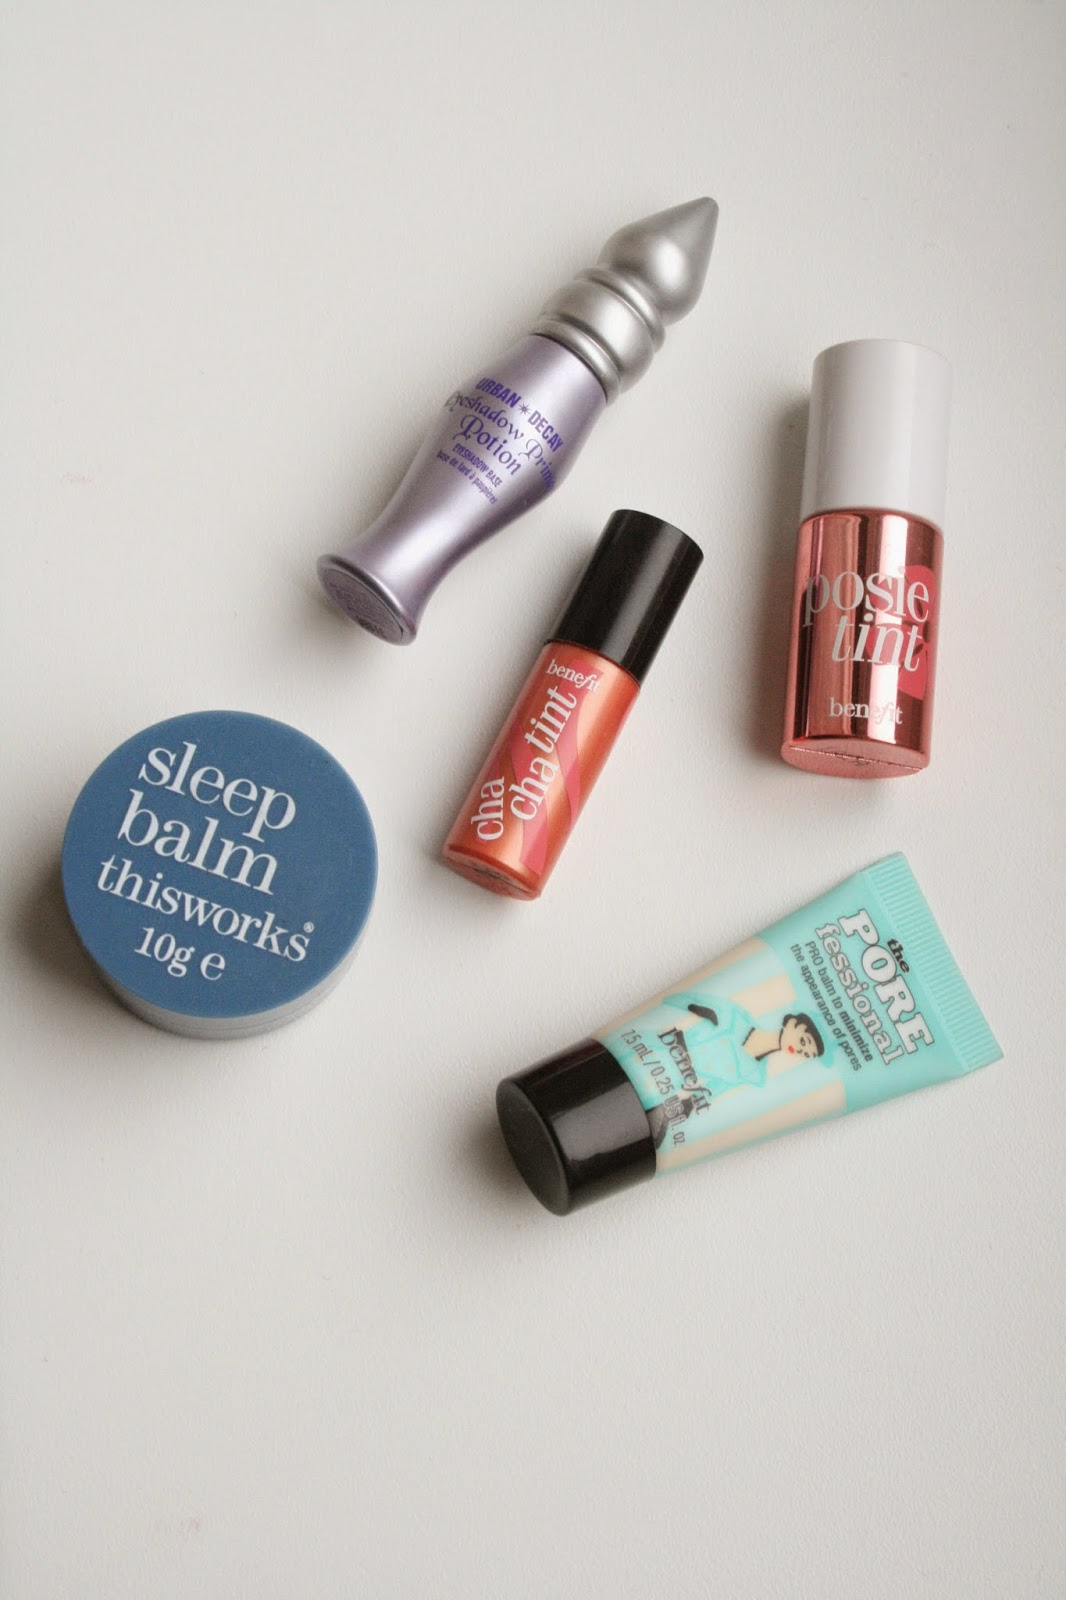 This Works Sleep Balm, Urban Decay Eyeshadow Primer Potion, Benefit Chacha tint, Benefit Posietint, Benefit Porefessional